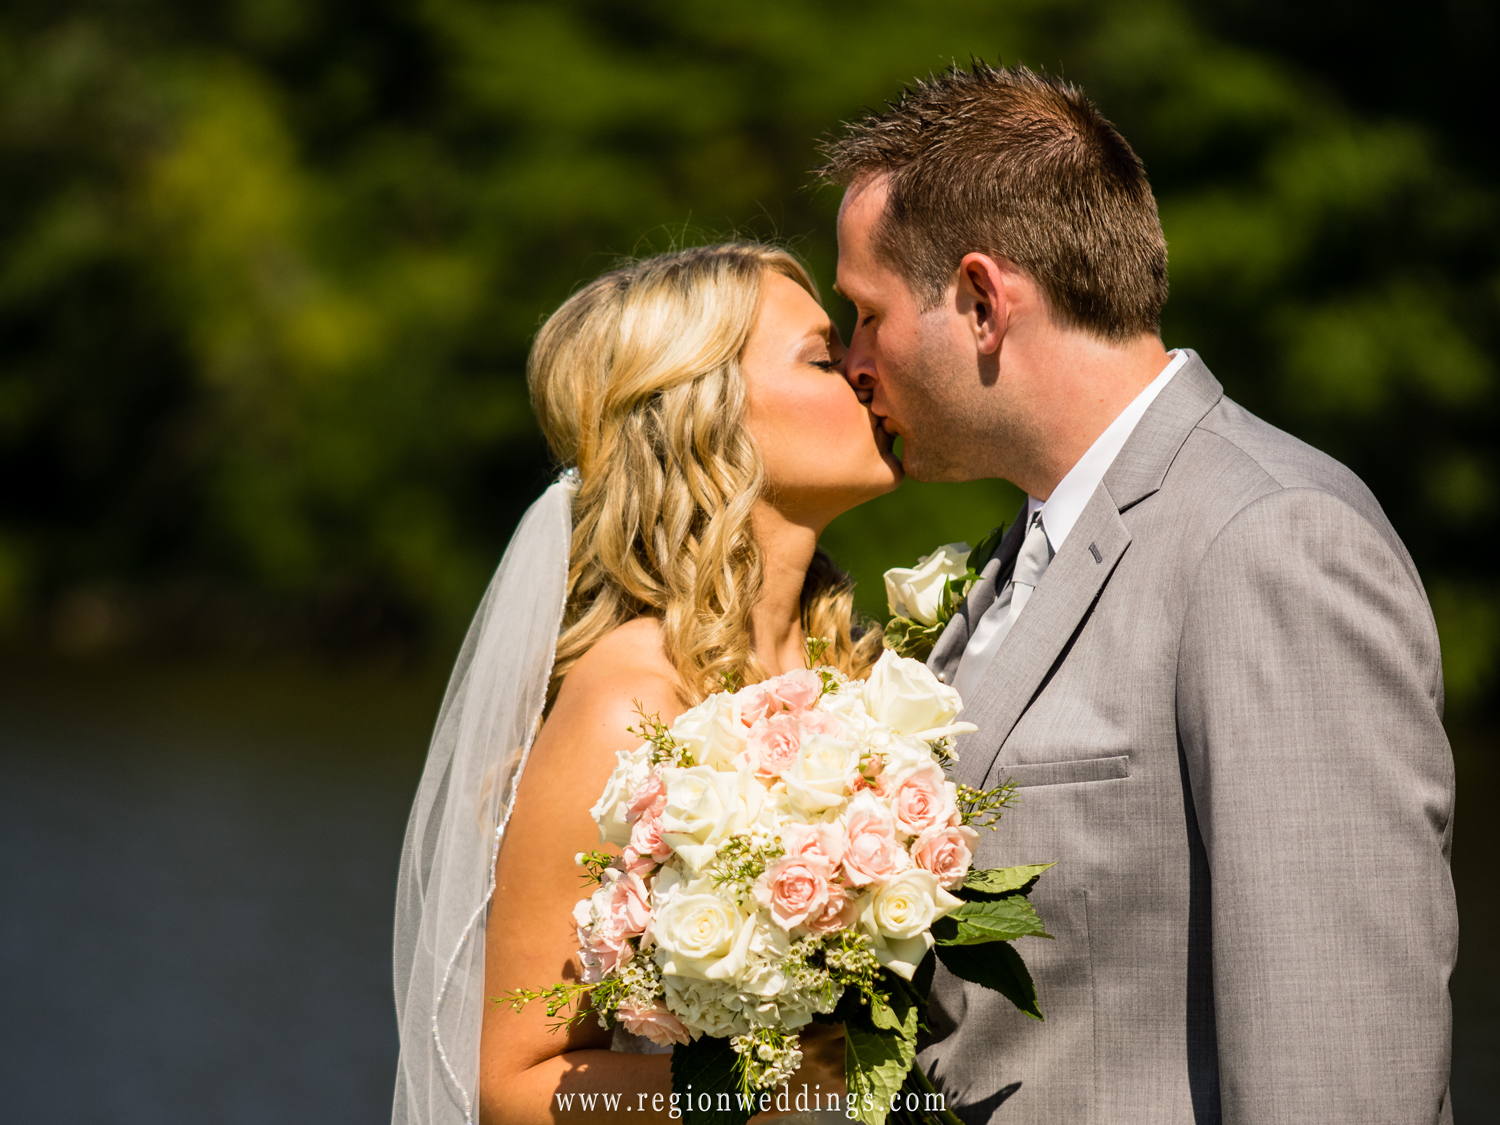 A sun drenched kiss along the lake for the bride and groom.